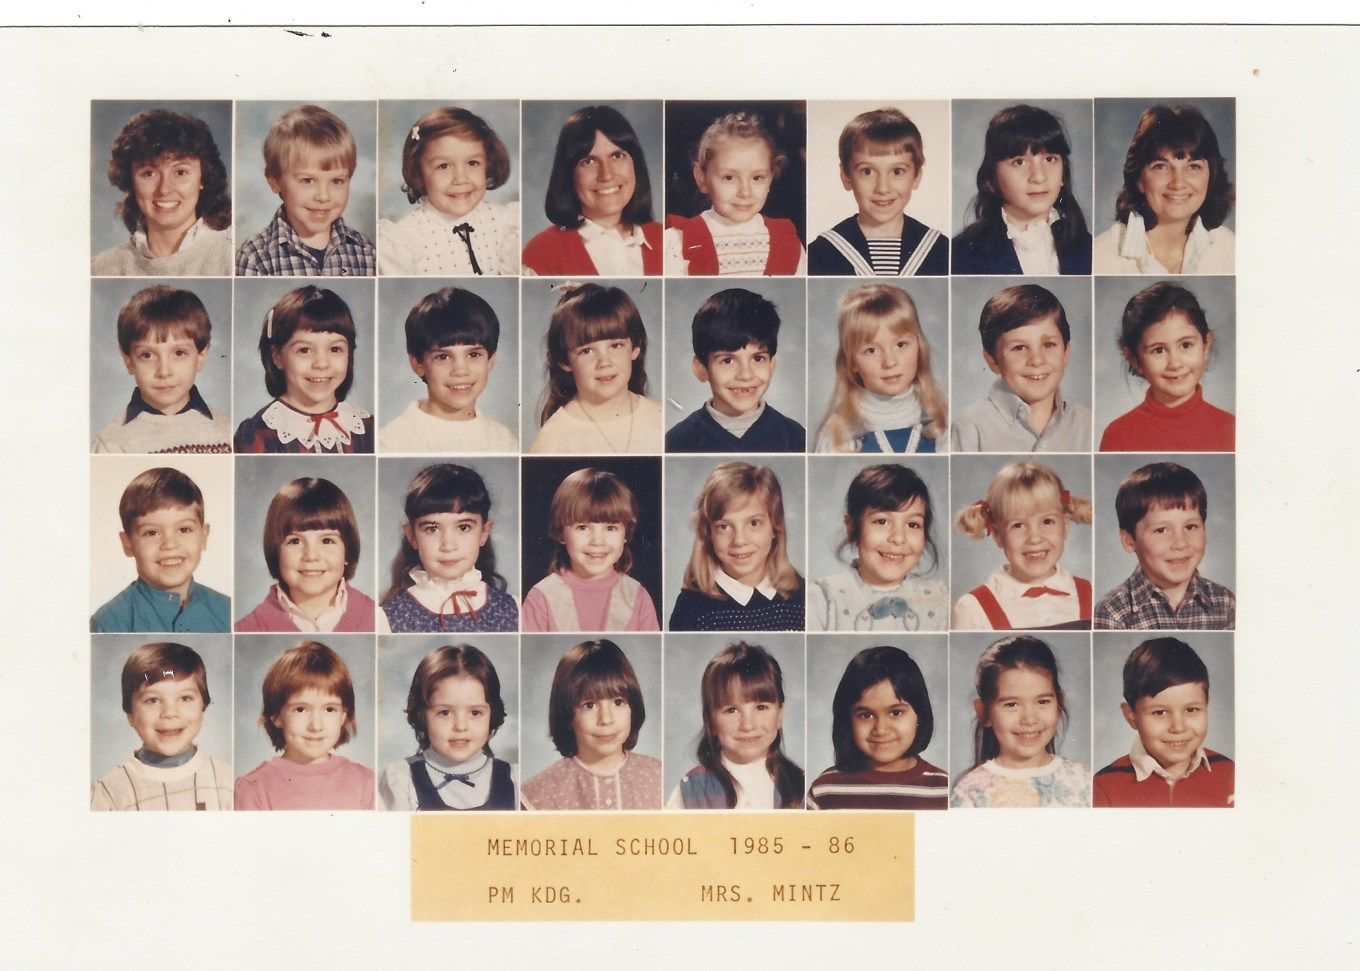 Mrs. Mintz Memorial School 1985, Burlington MA